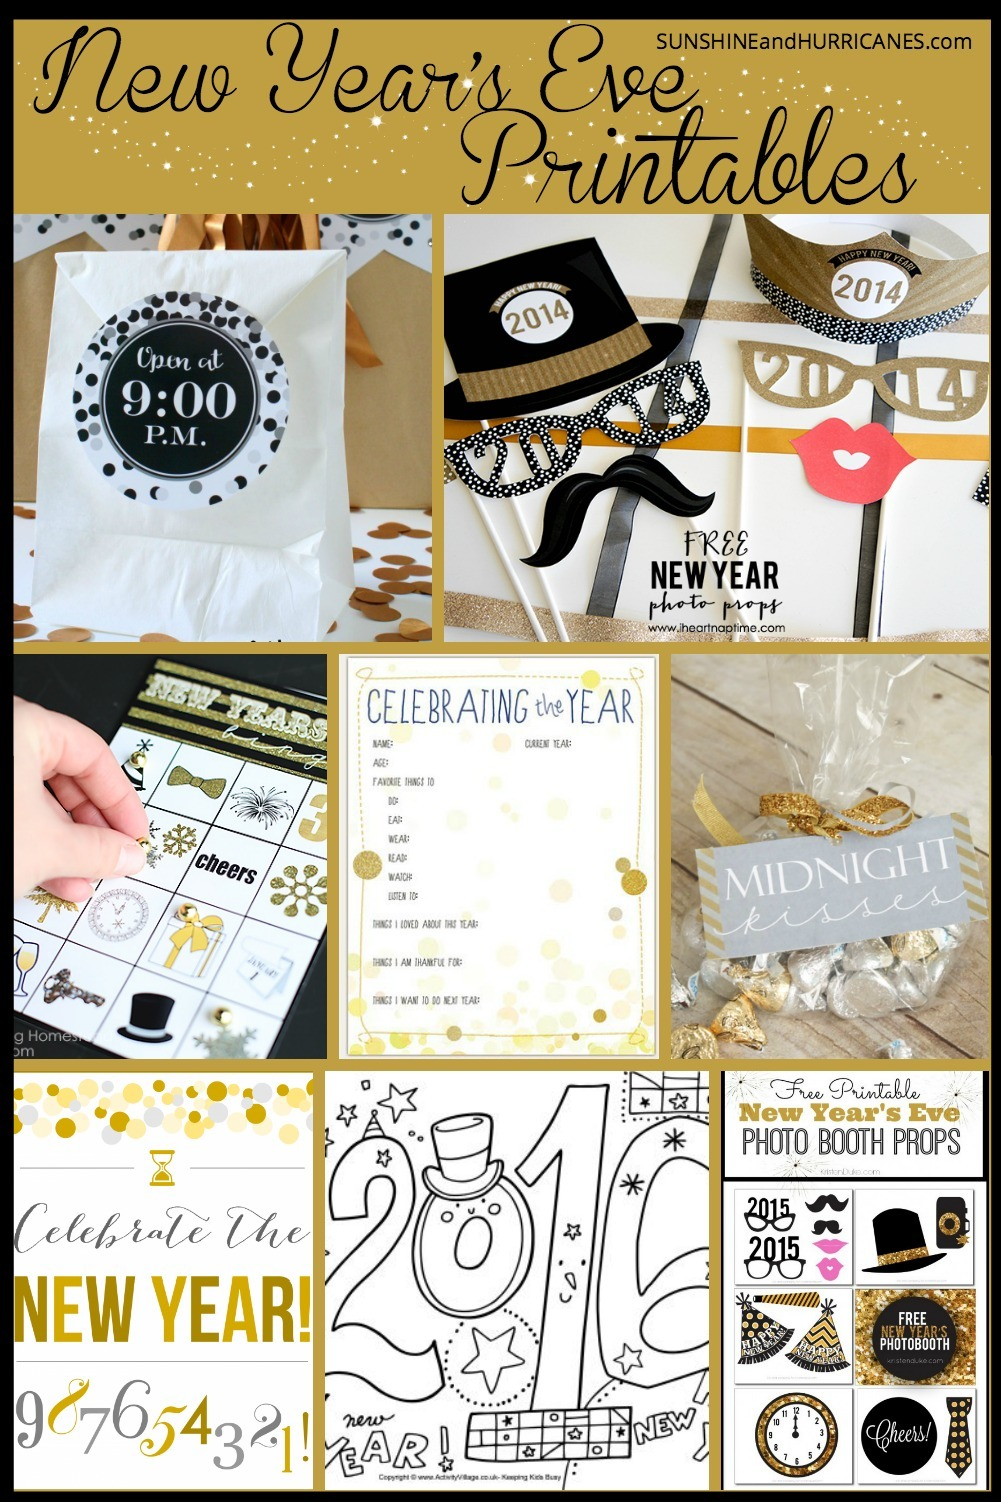 Looking for some easy family fun to help ring in the New Year? Get the party started with photo booth props, games, coloring pages and more all included in our New Year's Eve Printables round-up. Let the countdown to fun begin! SunshineandHurricanes.com